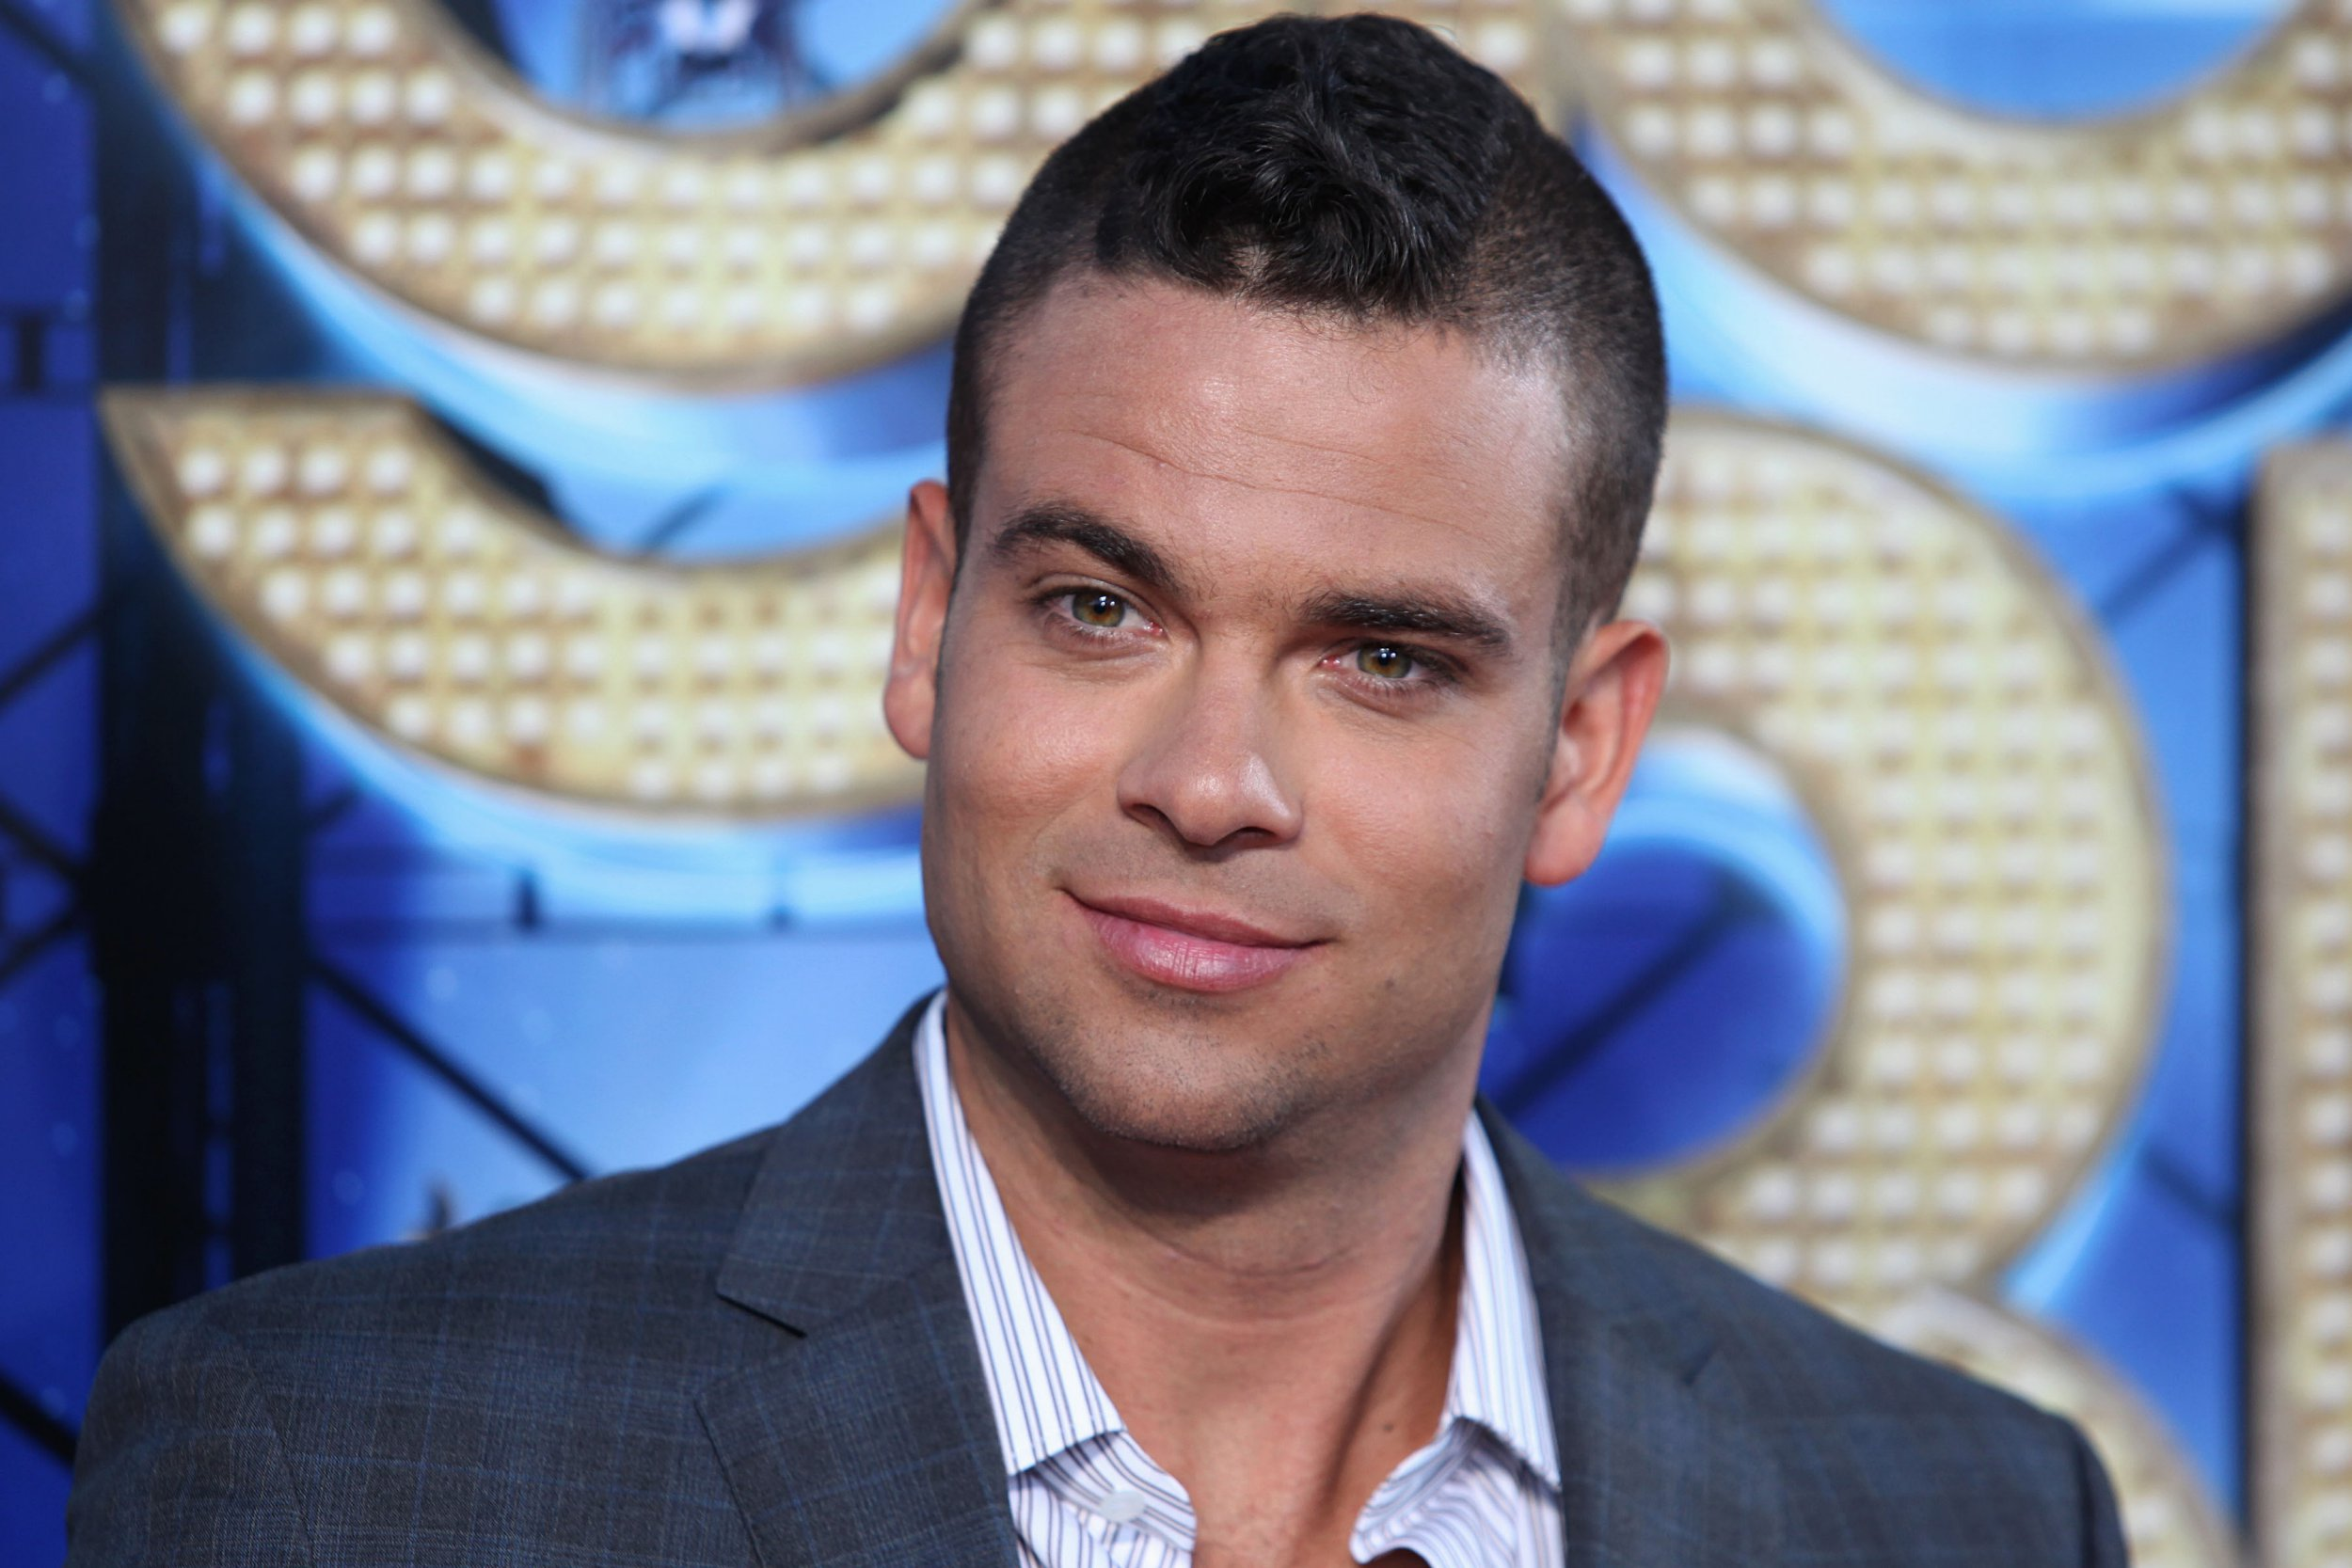 Mark Salling had alcohol in his blood at time of death